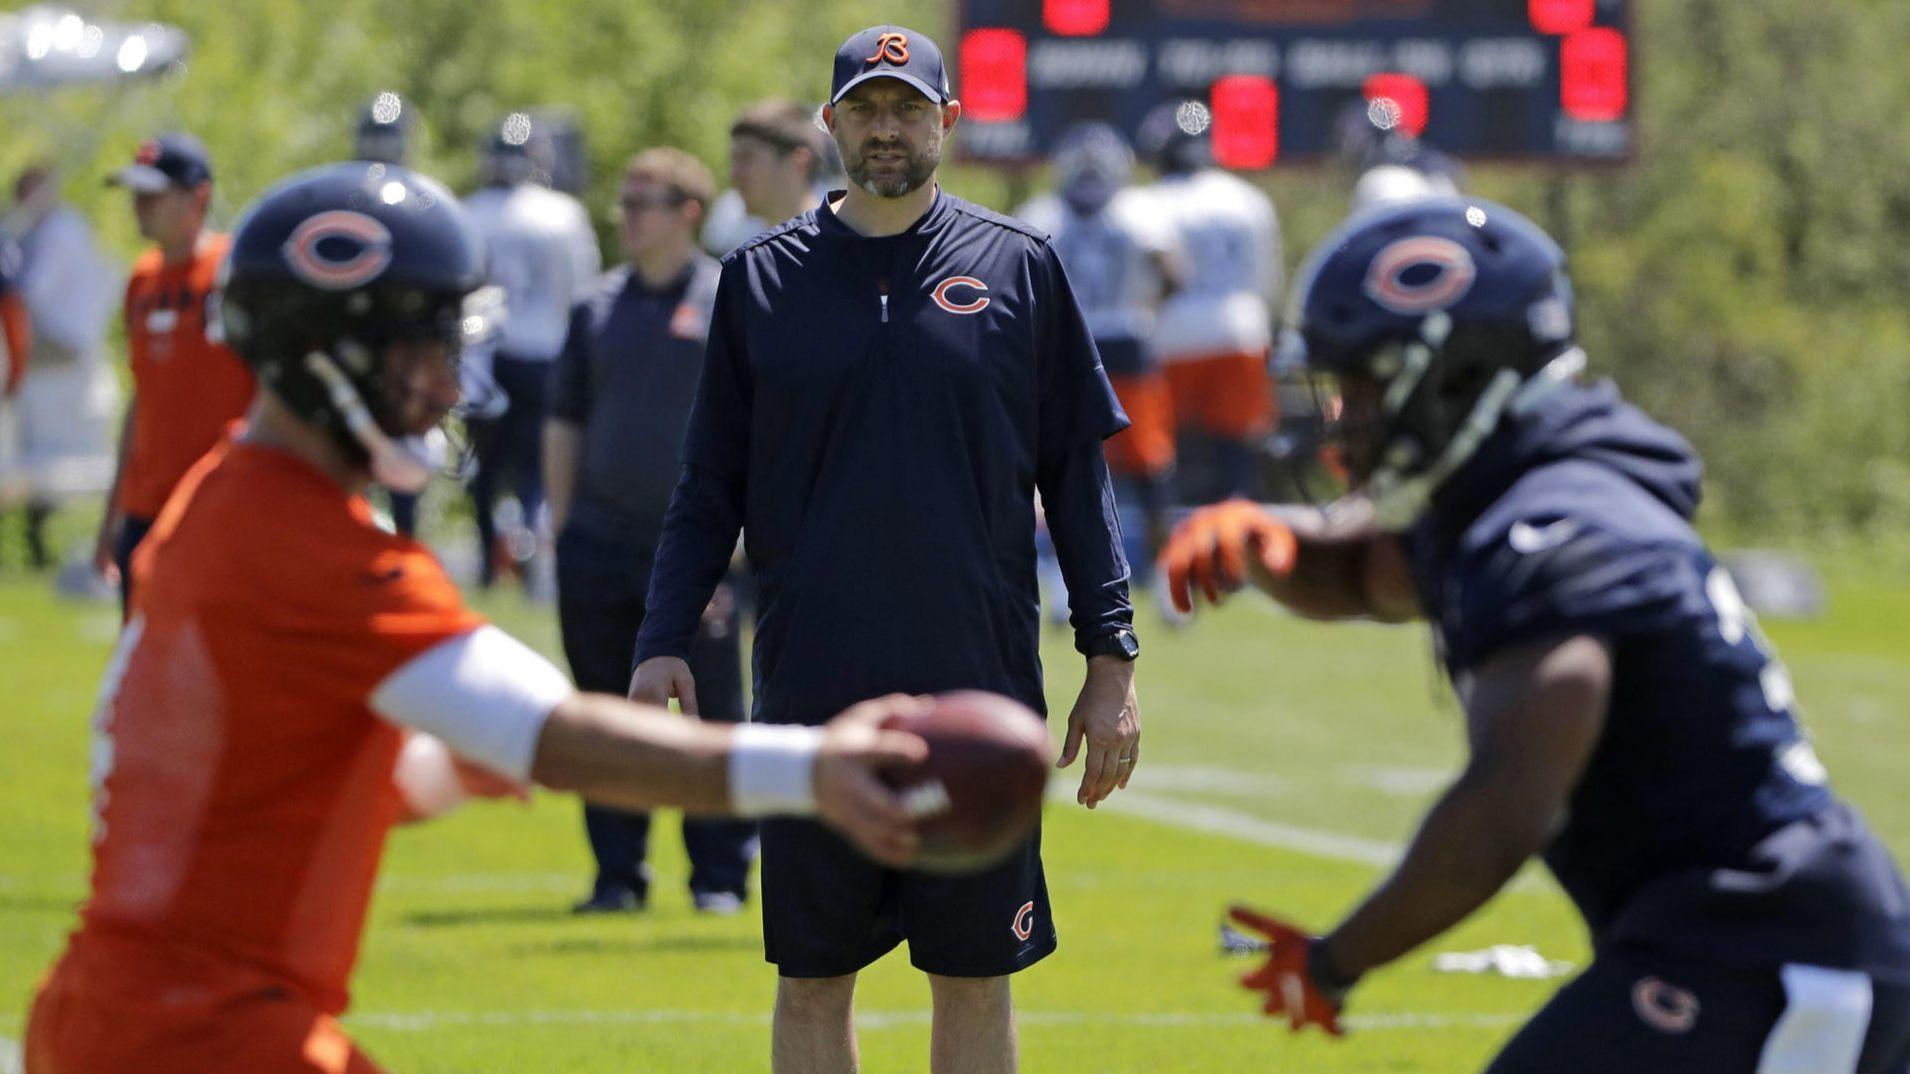 Ct-spt-bears-top-10-offseason-headlines-20180716